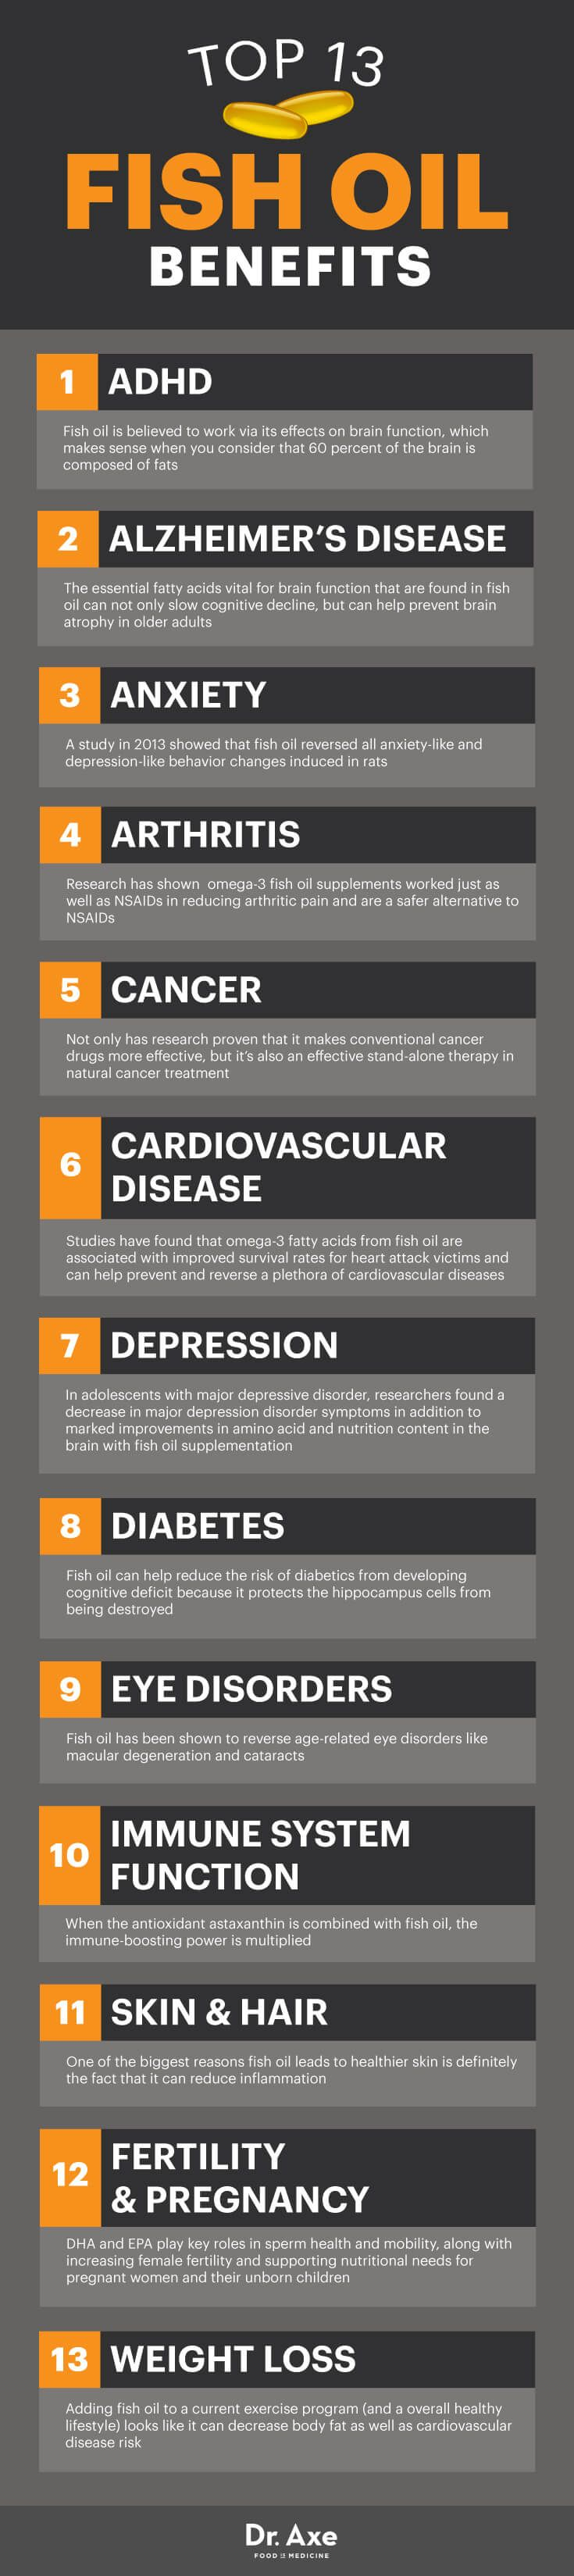 13 Omega-3 Fish Oil Benefits and Side Effects - Dr. Axe